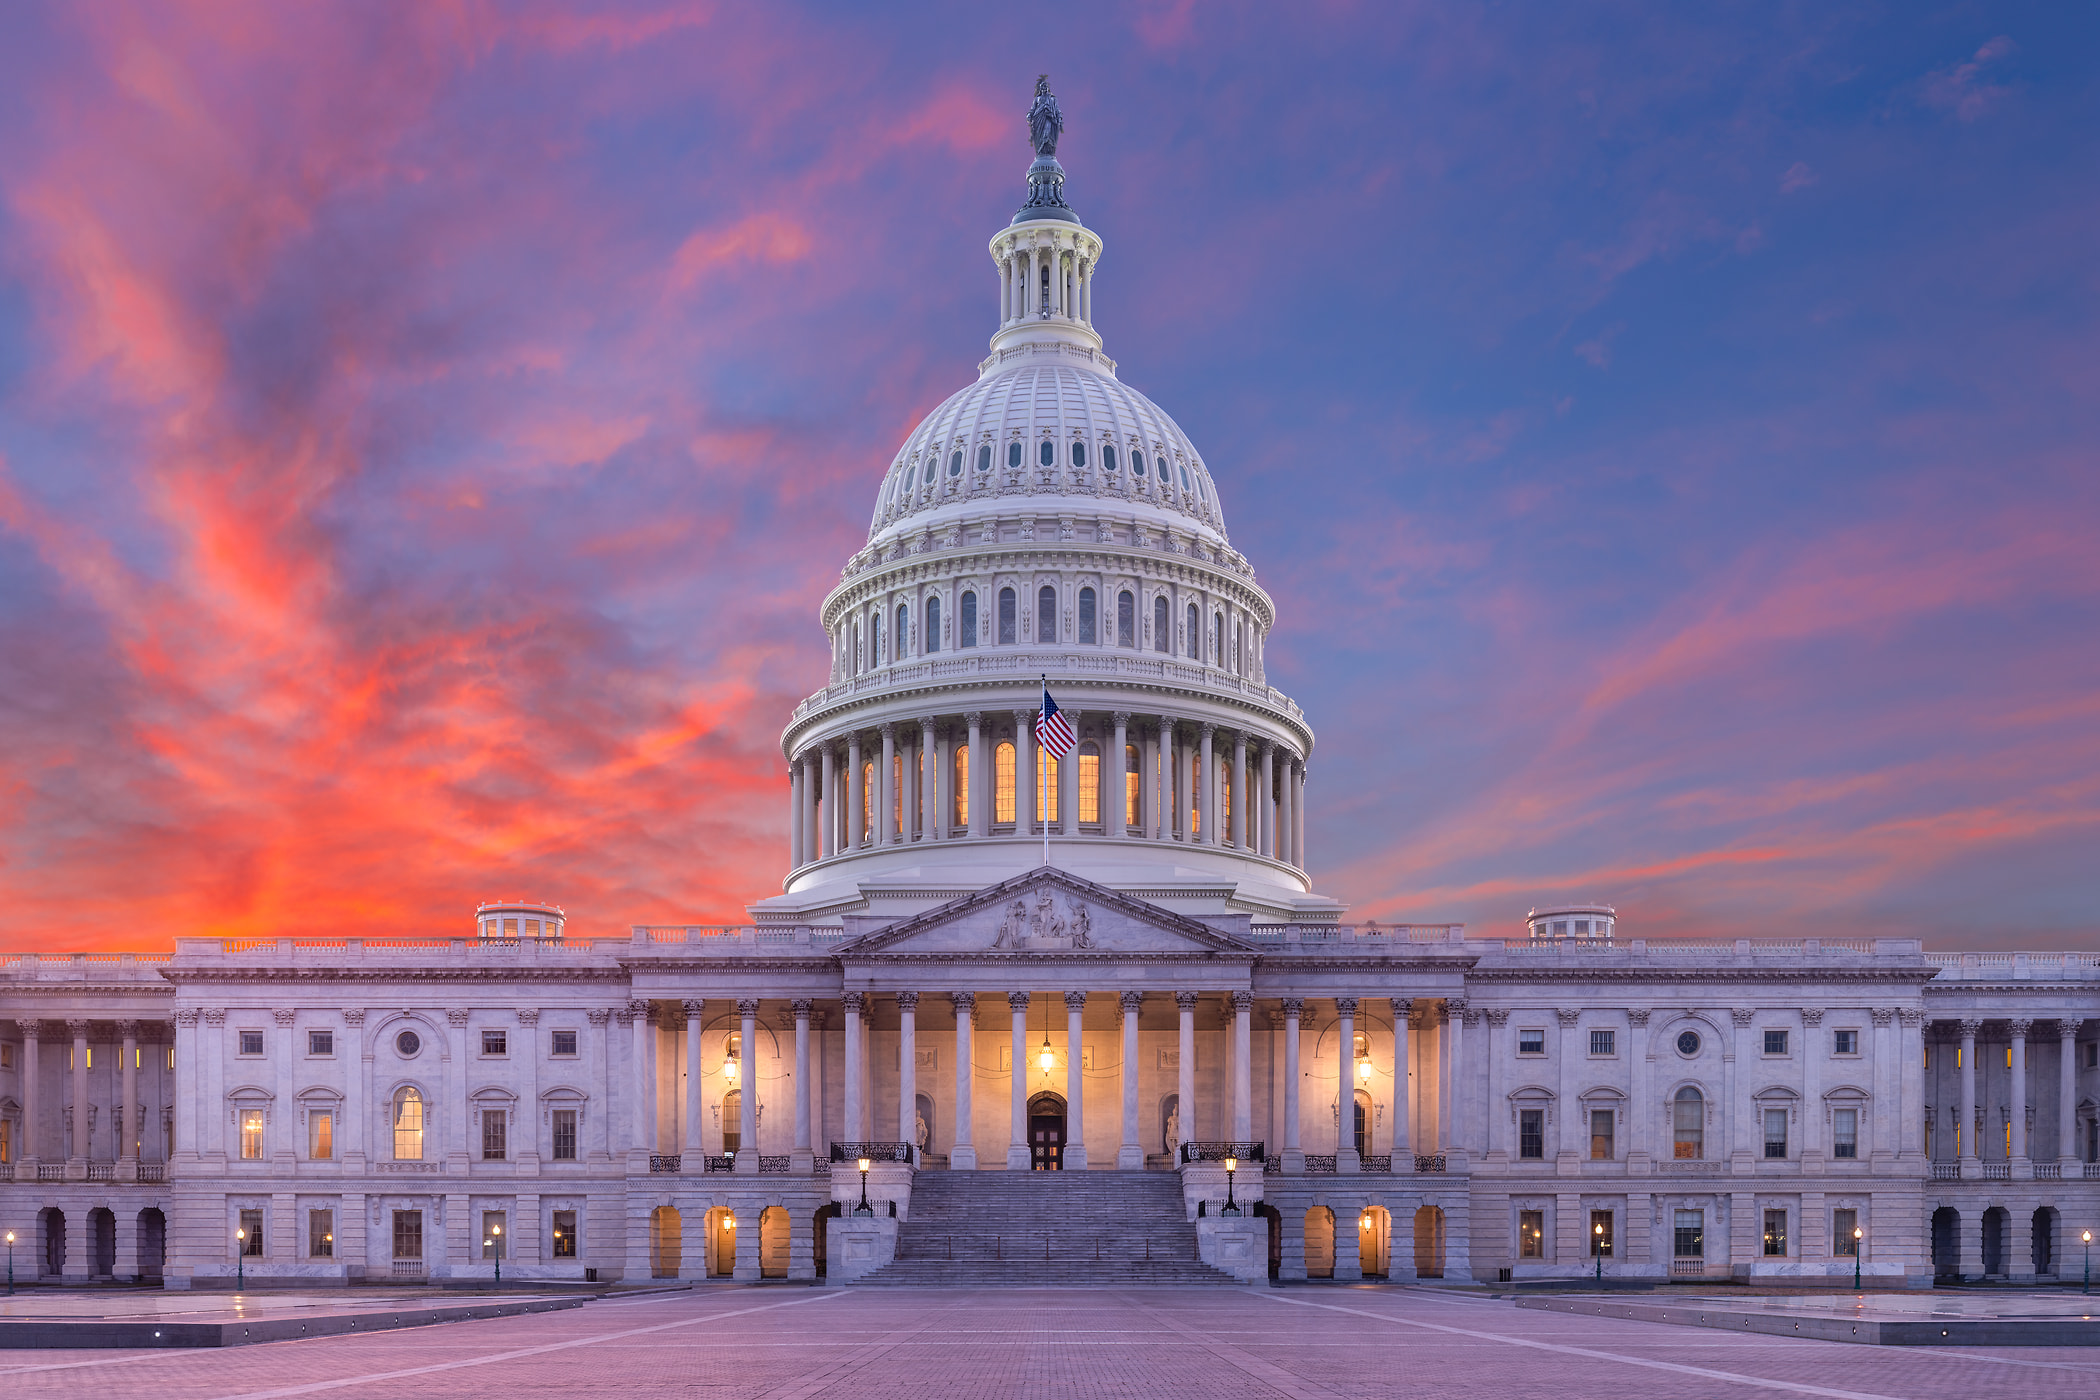 245 megapixels! A very high resolution, large-format VAST photo of the United States Capitol building at sunset; fine art photograph created by Tim Lo Monaco in Washington, D.C.